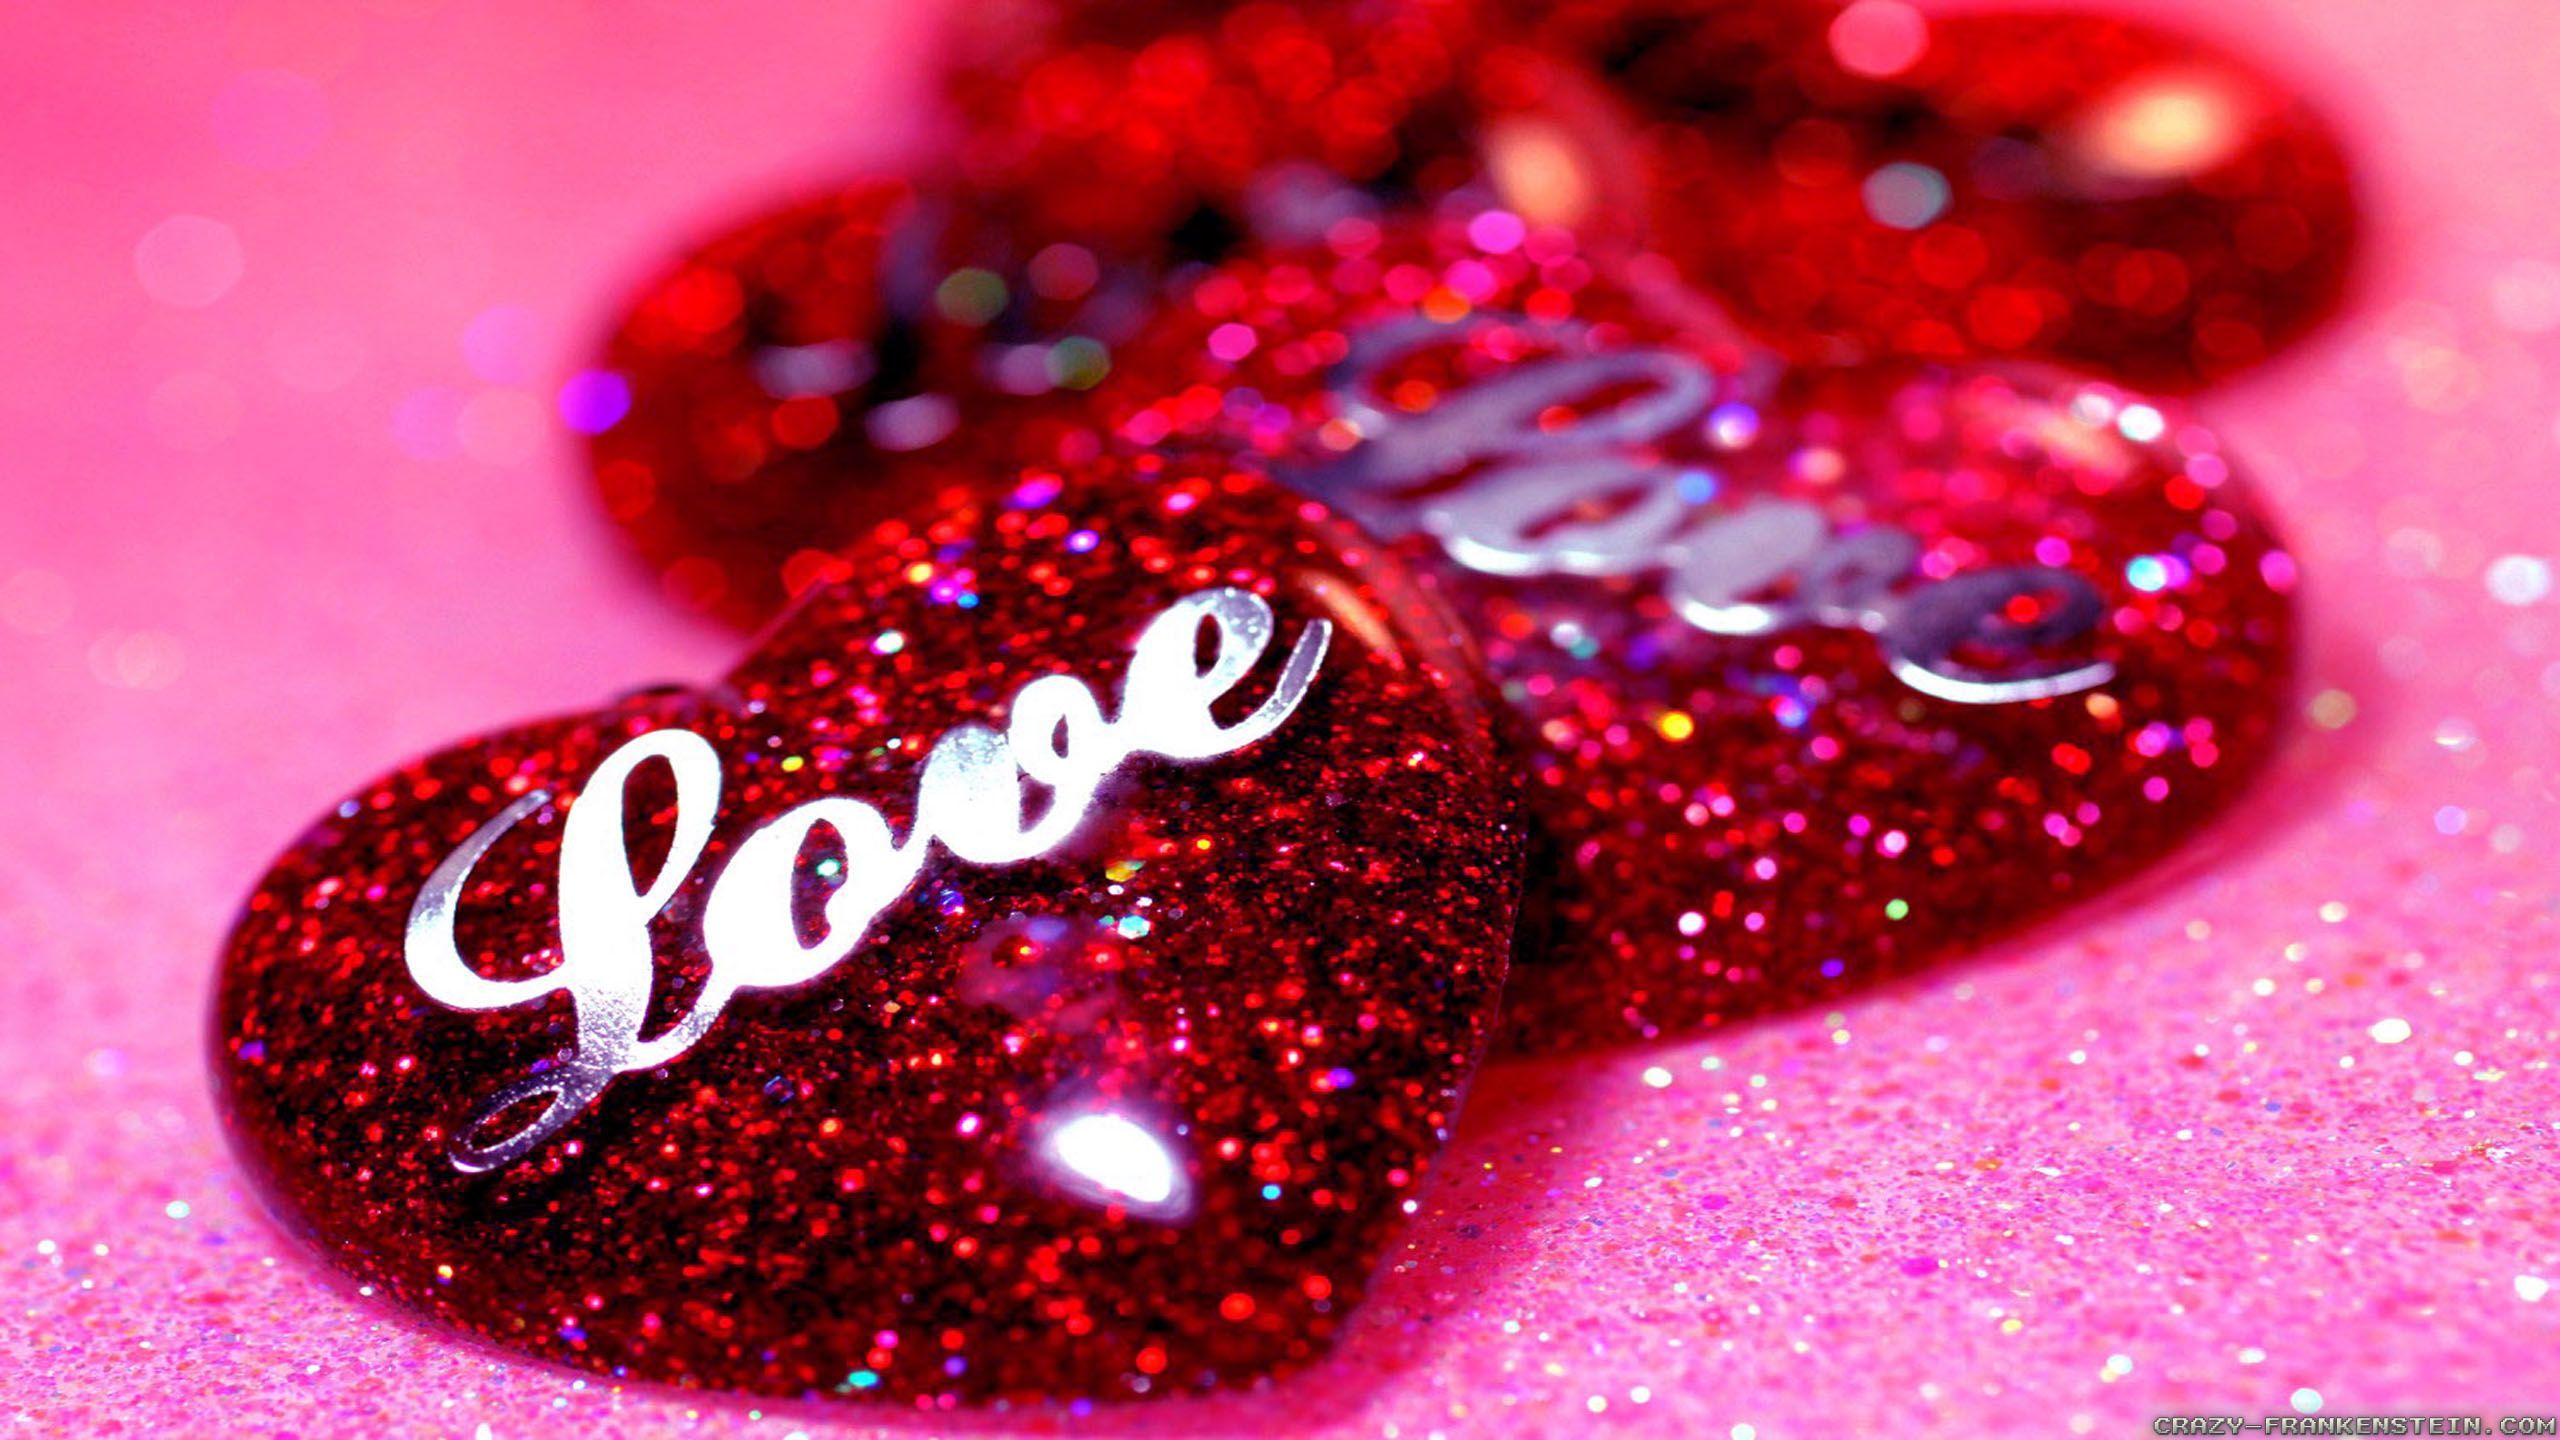 Love Wallpaper Free Download  Free Wallpapers 2560x1440